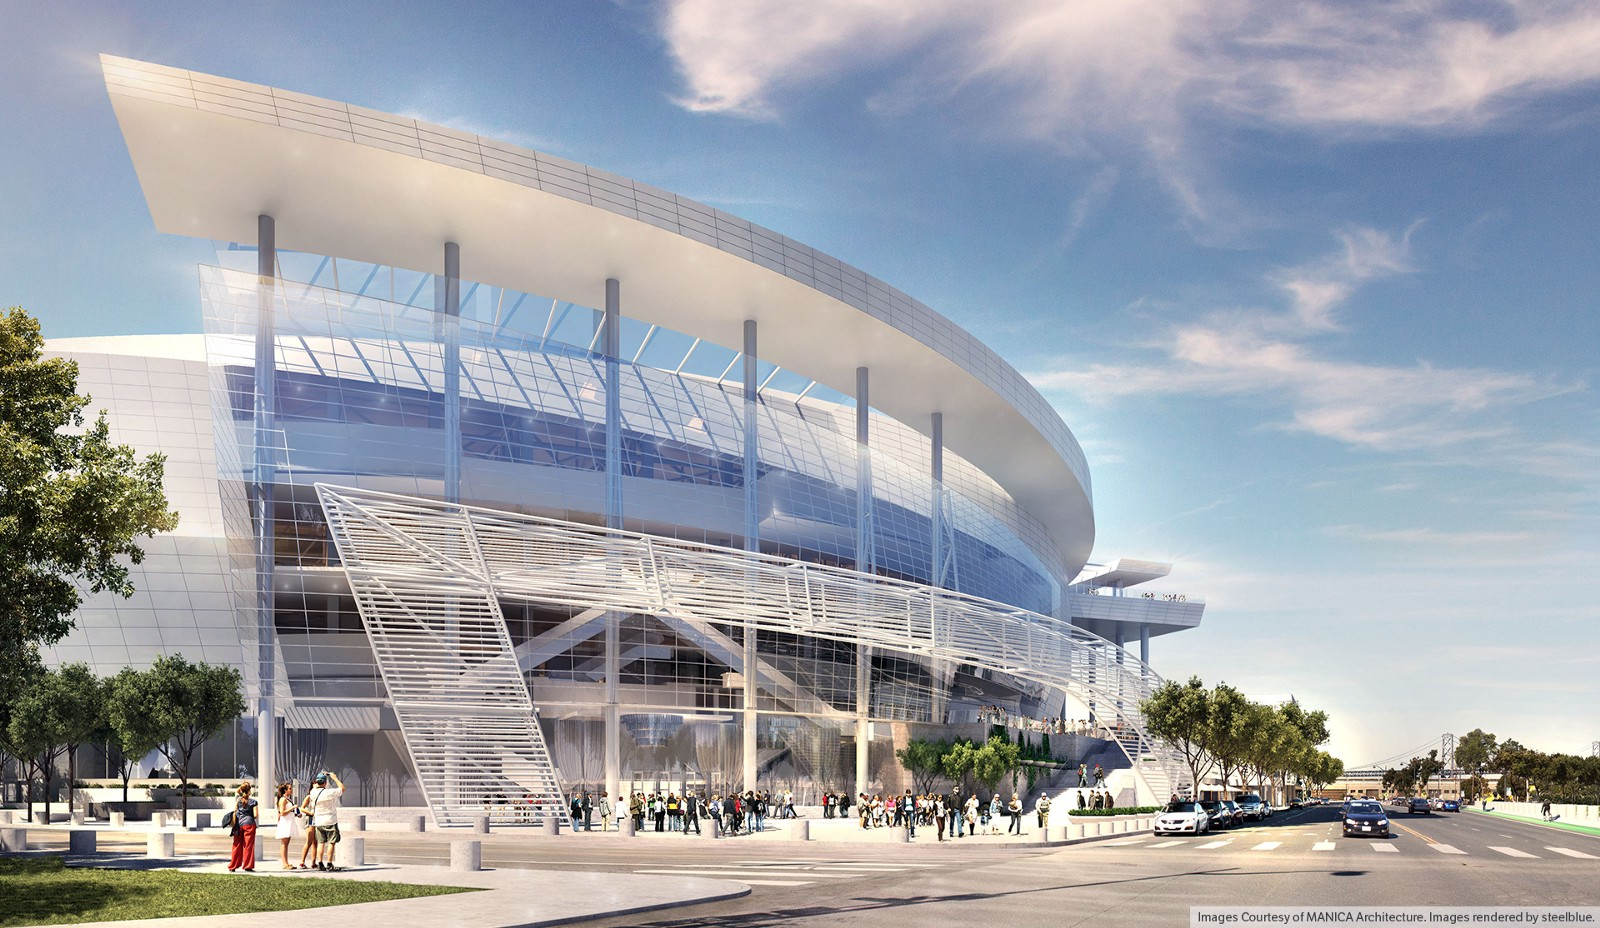 WARRIORS HOPING FOR SAFETY DURING CONSTRUCTION OF NEW ...